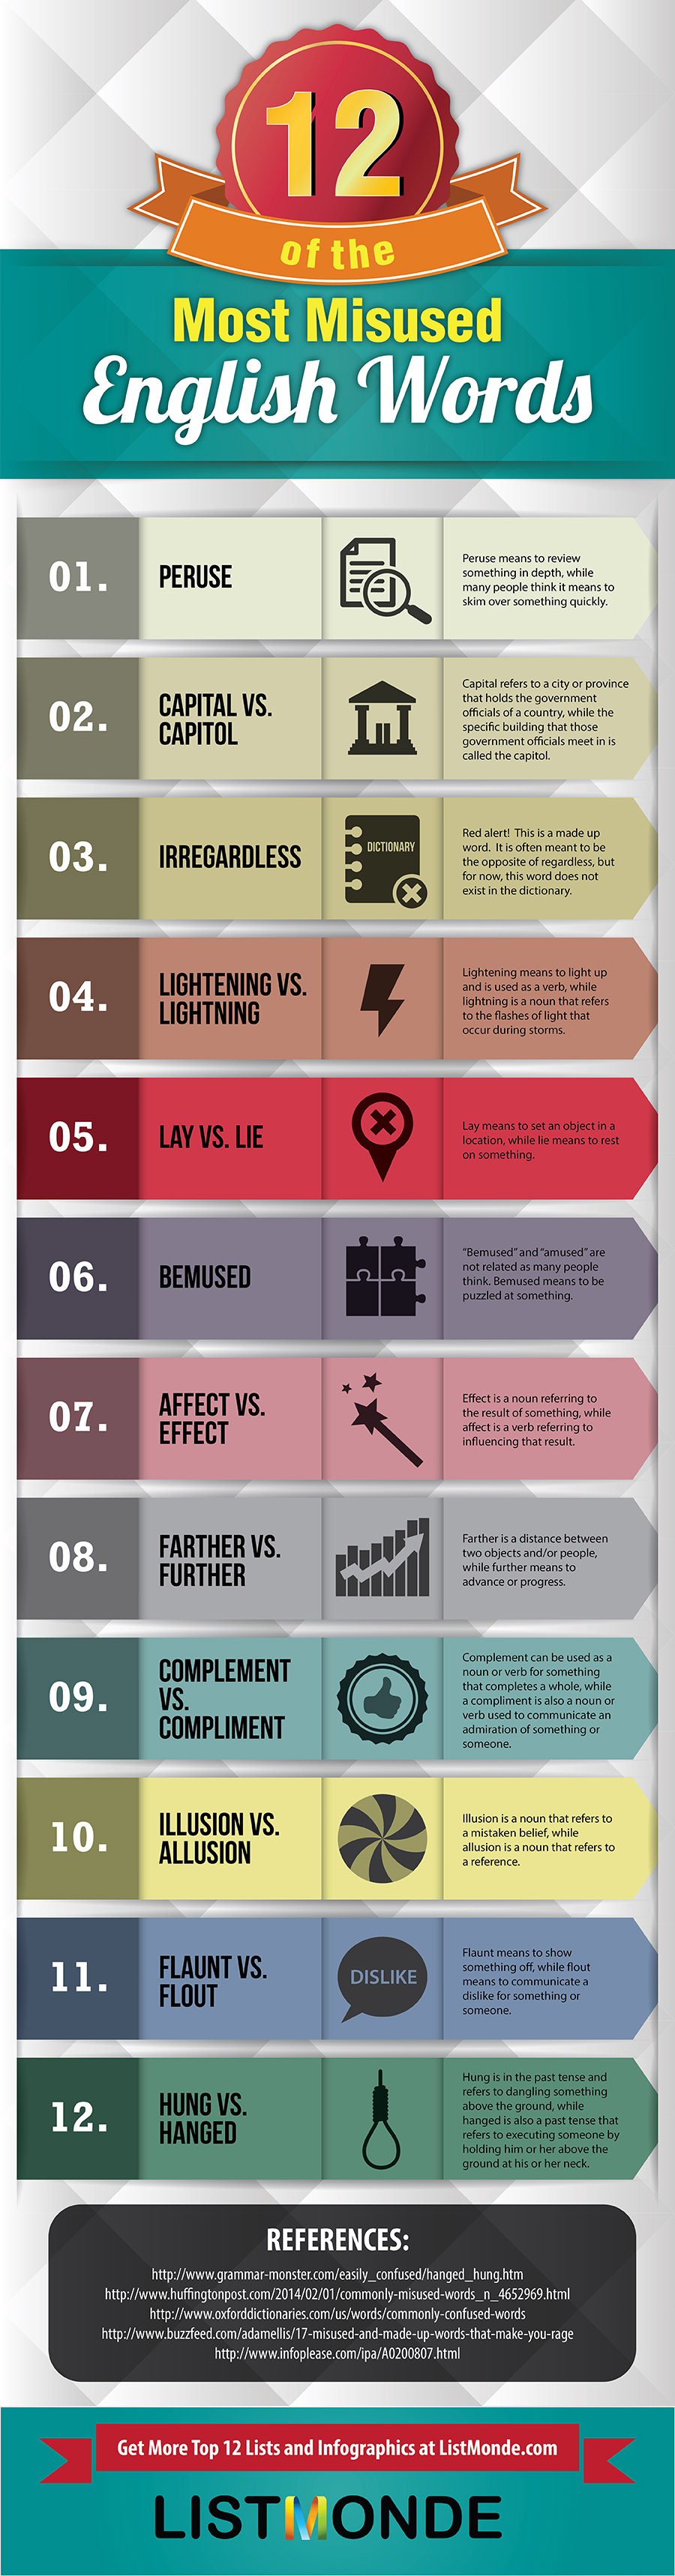 12 of the Most Misused English Words